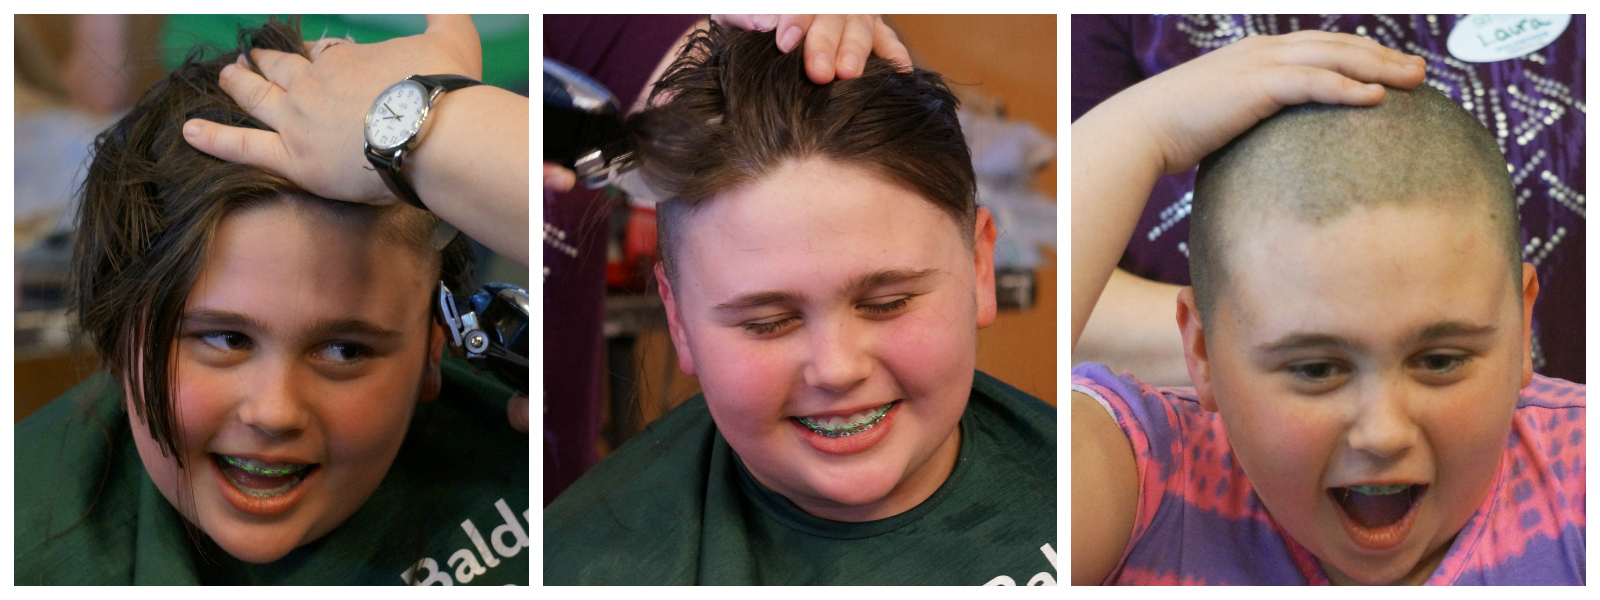 Carolyn during her shave for St. Baldrick's